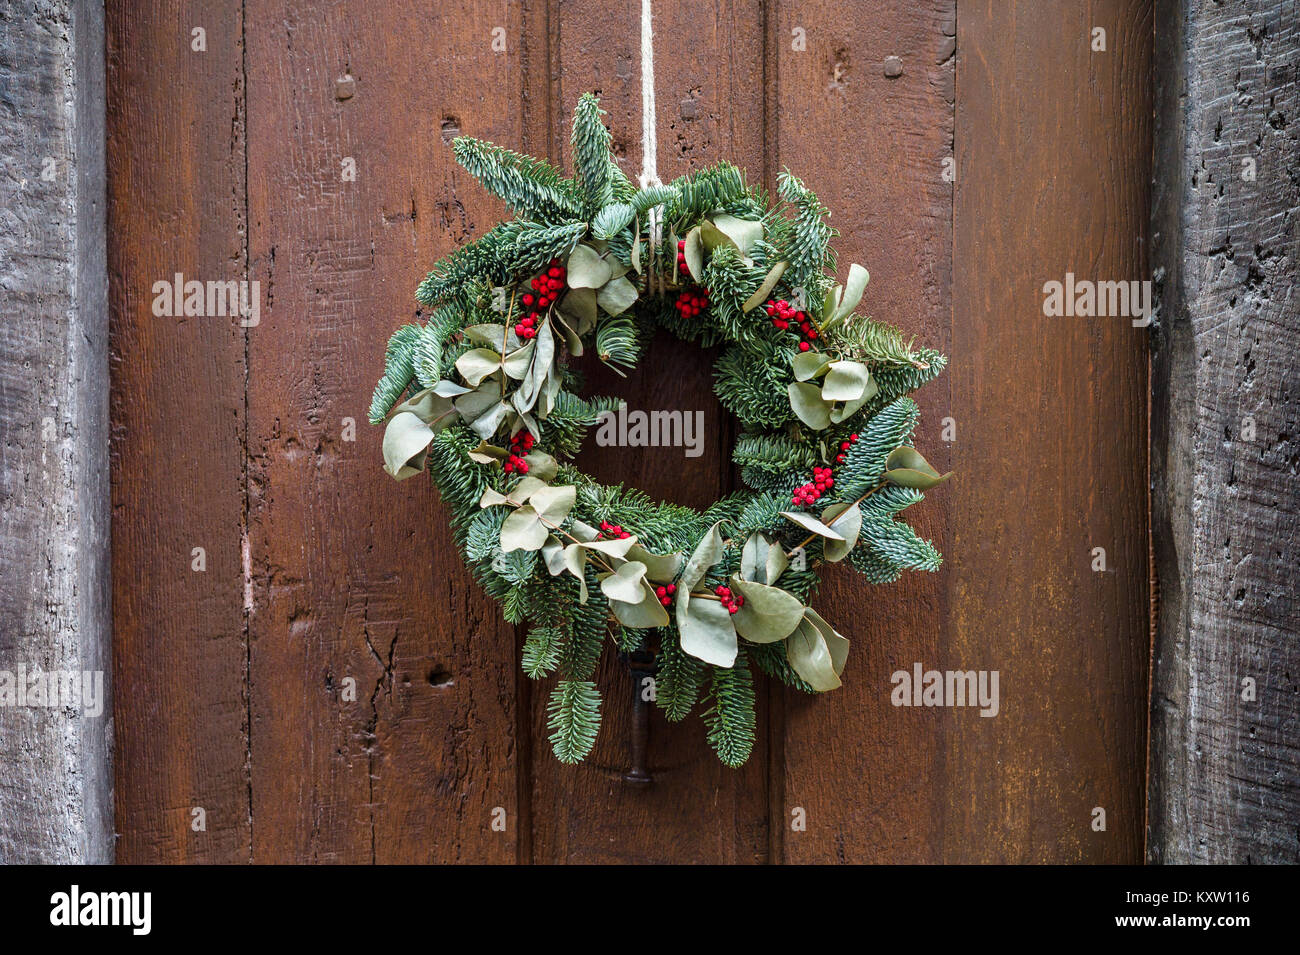 Front View Of A Traditional Christmas Crown Made Evergreen Branches Holly Leaves And Berries